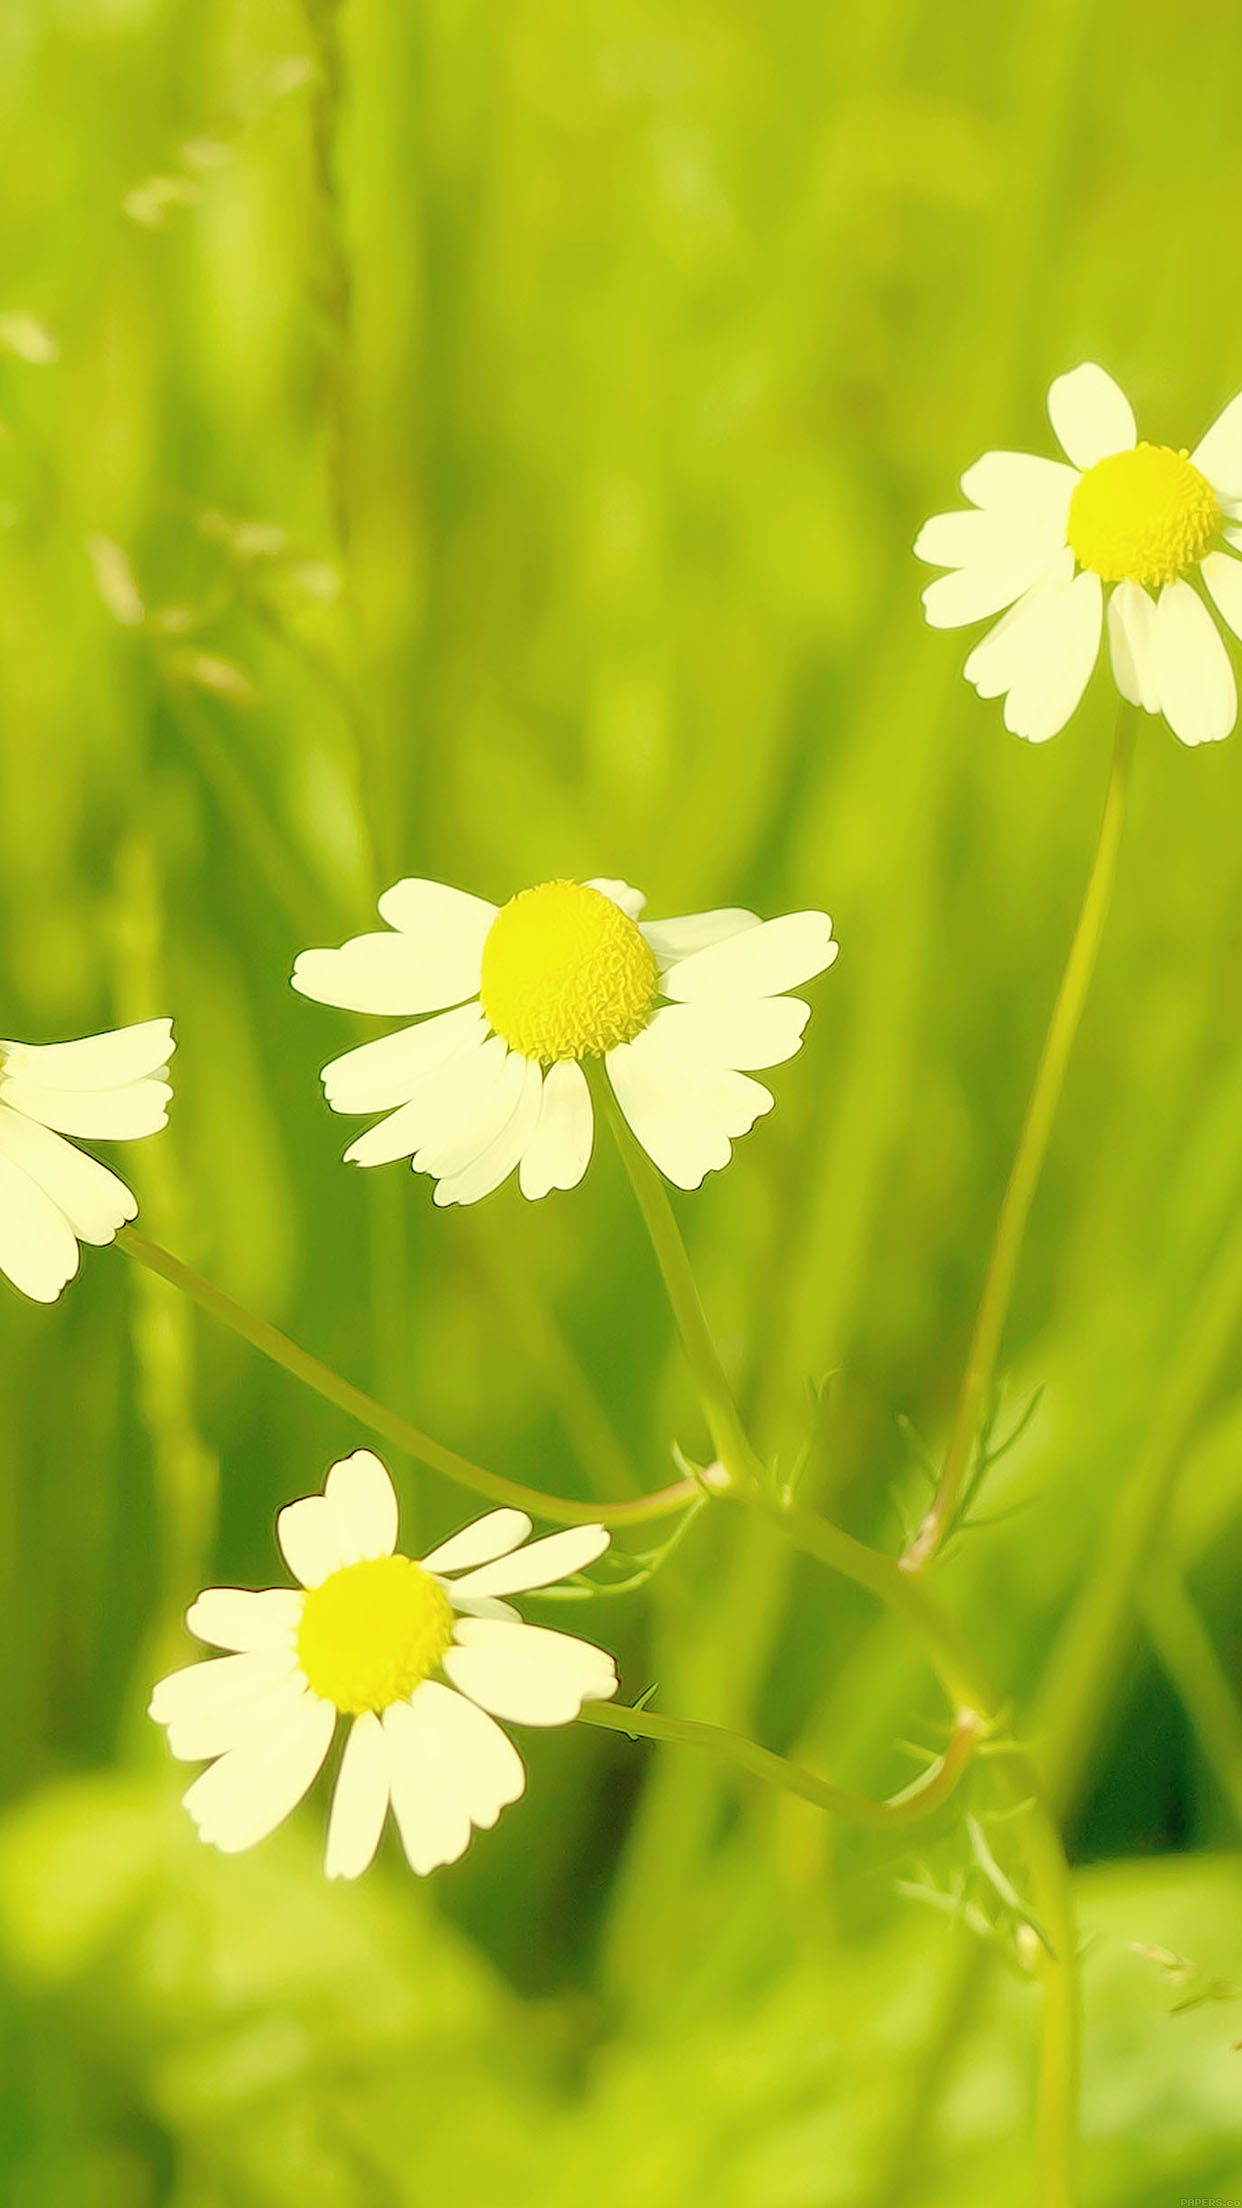 Iphone6papers Mc91 Wallpaper Spring Flower White Grass Nature